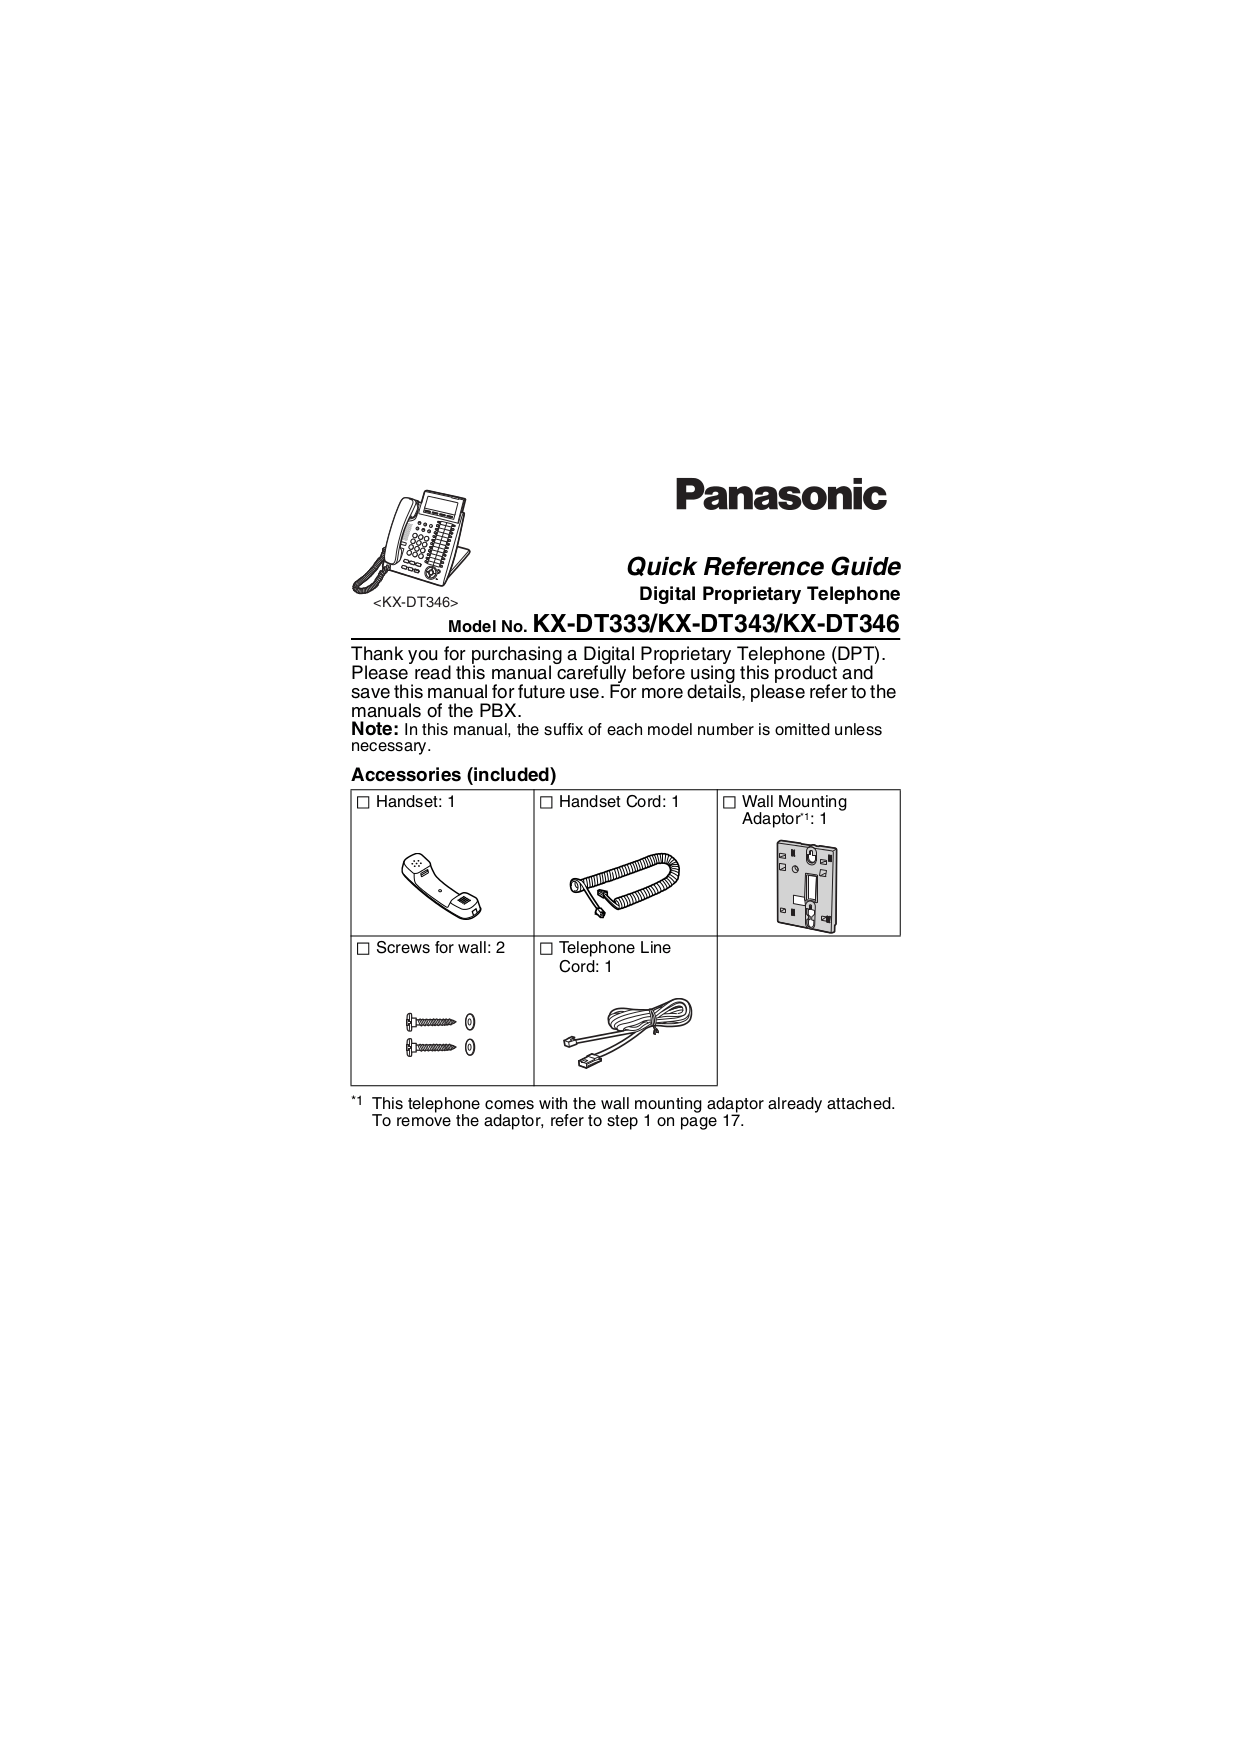 Download free pdf for Panasonic KX-DT333 Telephone manual